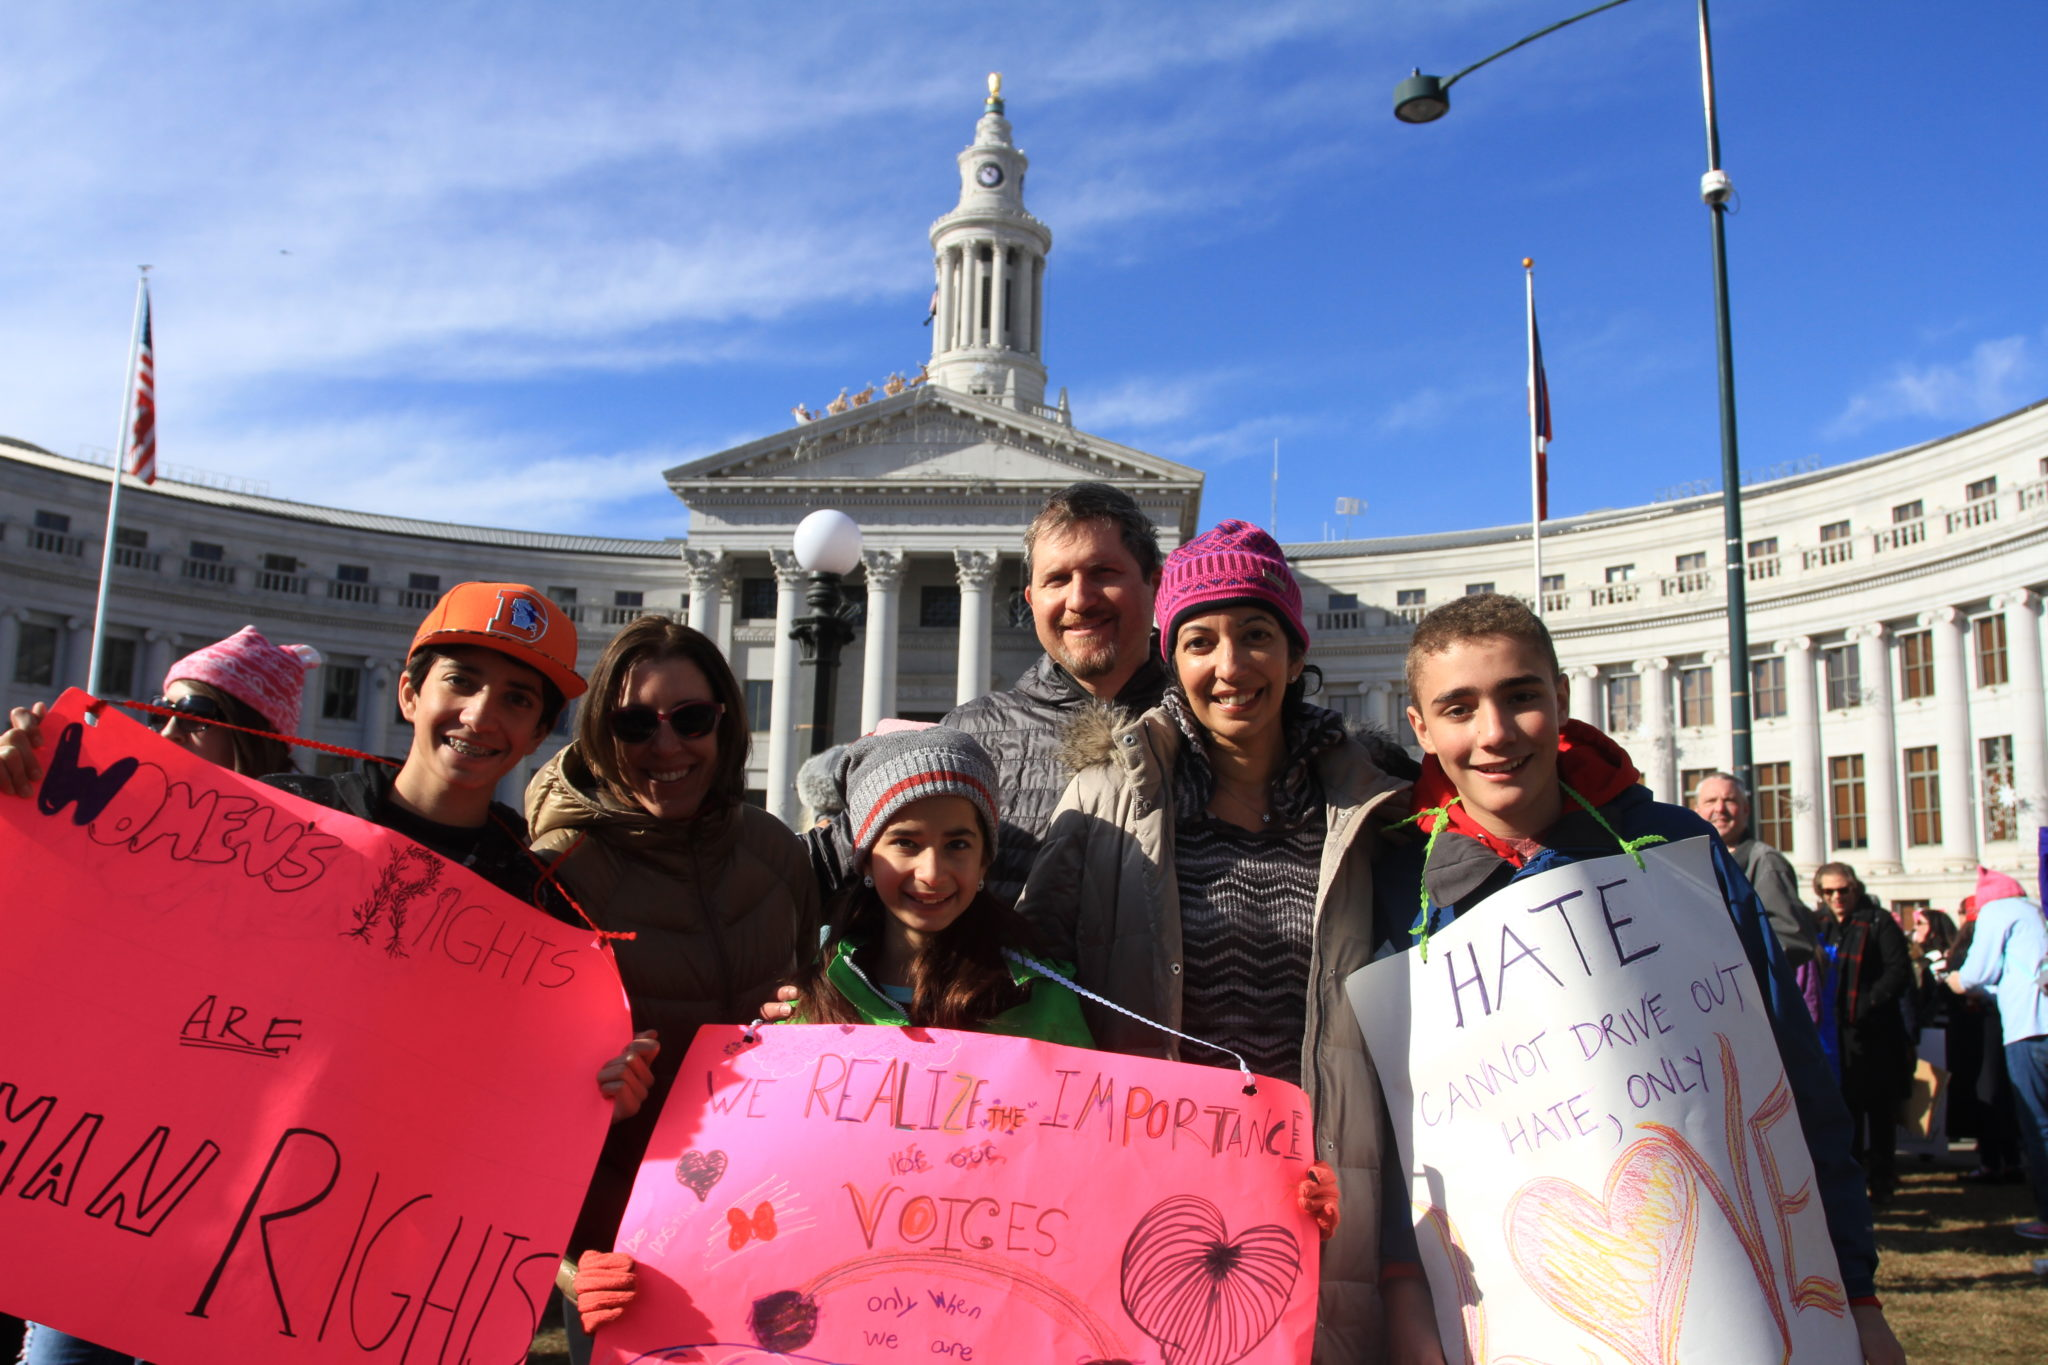 Sunit Gill (second from right) attends the Women's March on Denver with her family and neighbors on Saturday, Jan. 21, 2017.